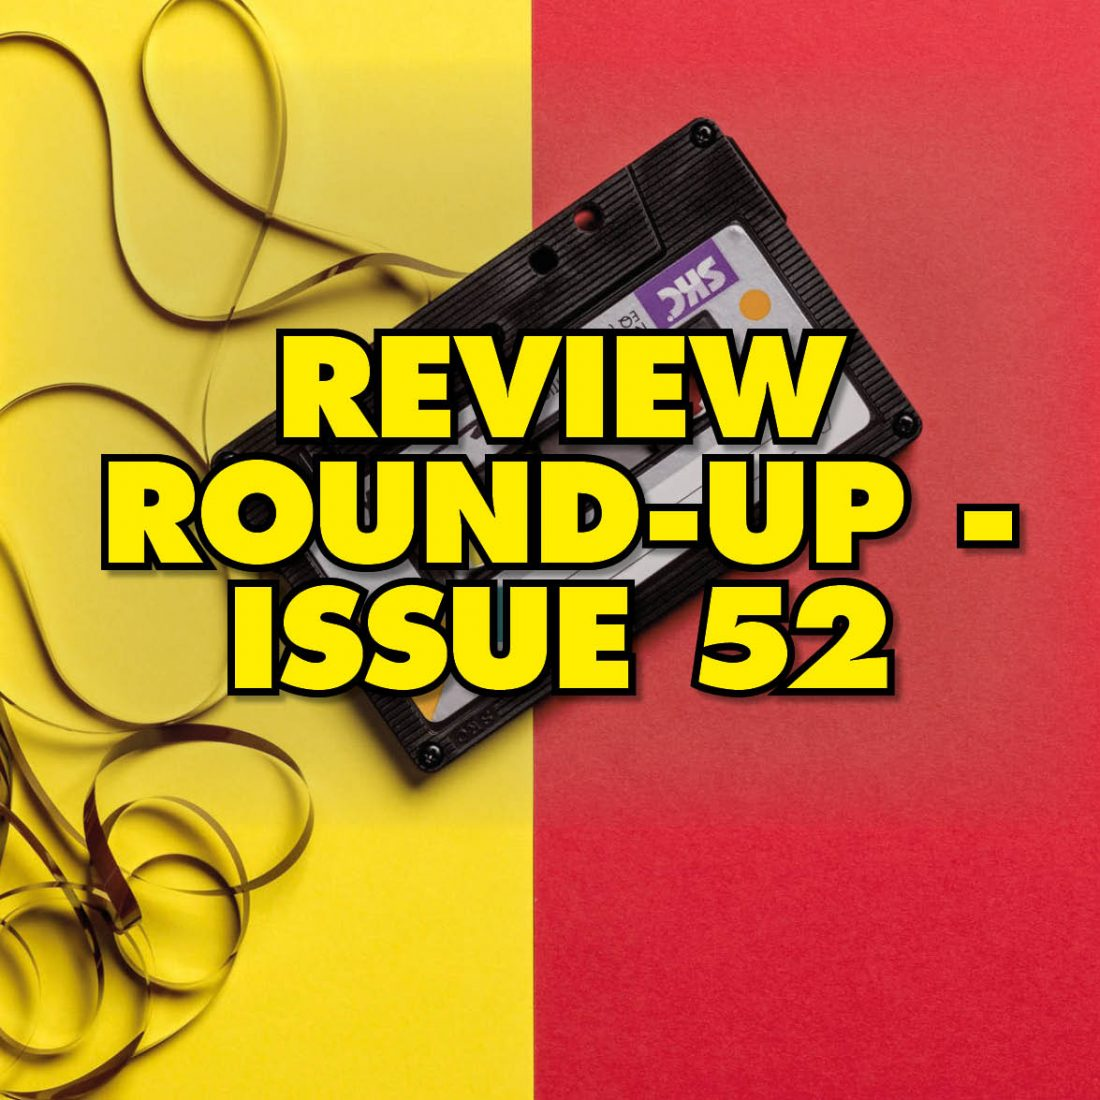 Review Round-Up